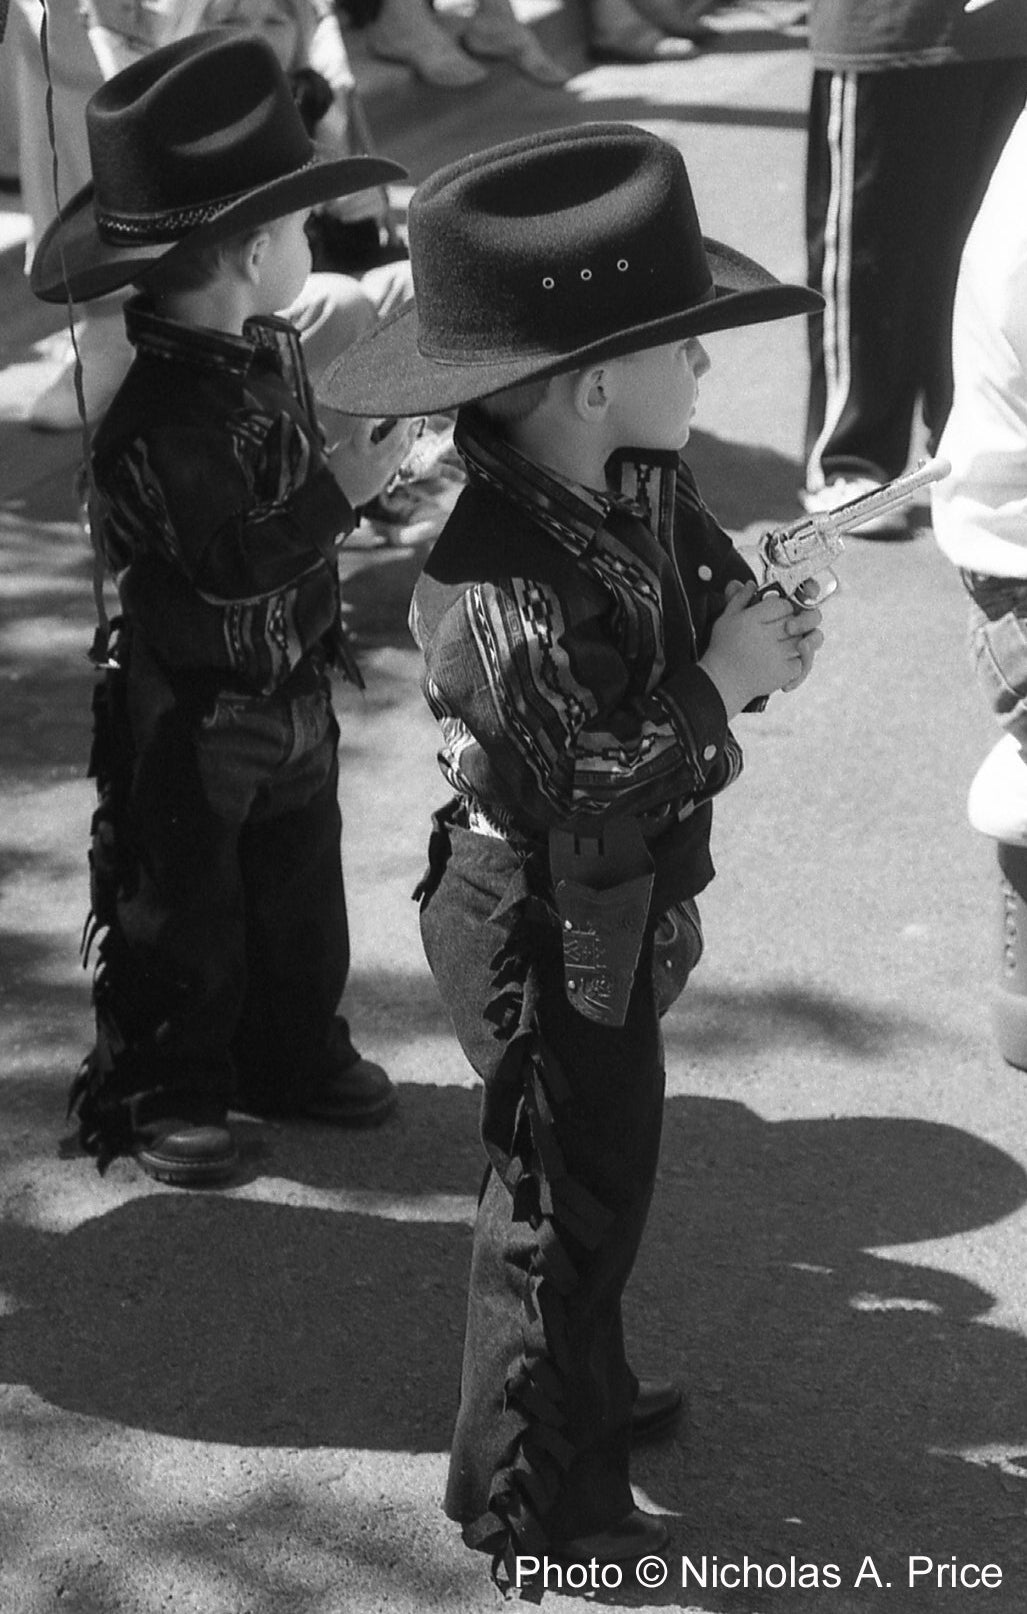 JUNIOR COWBOYS By Nicholas A. Price, 8 x 10 RC Glossy Print - Artnet Showcase